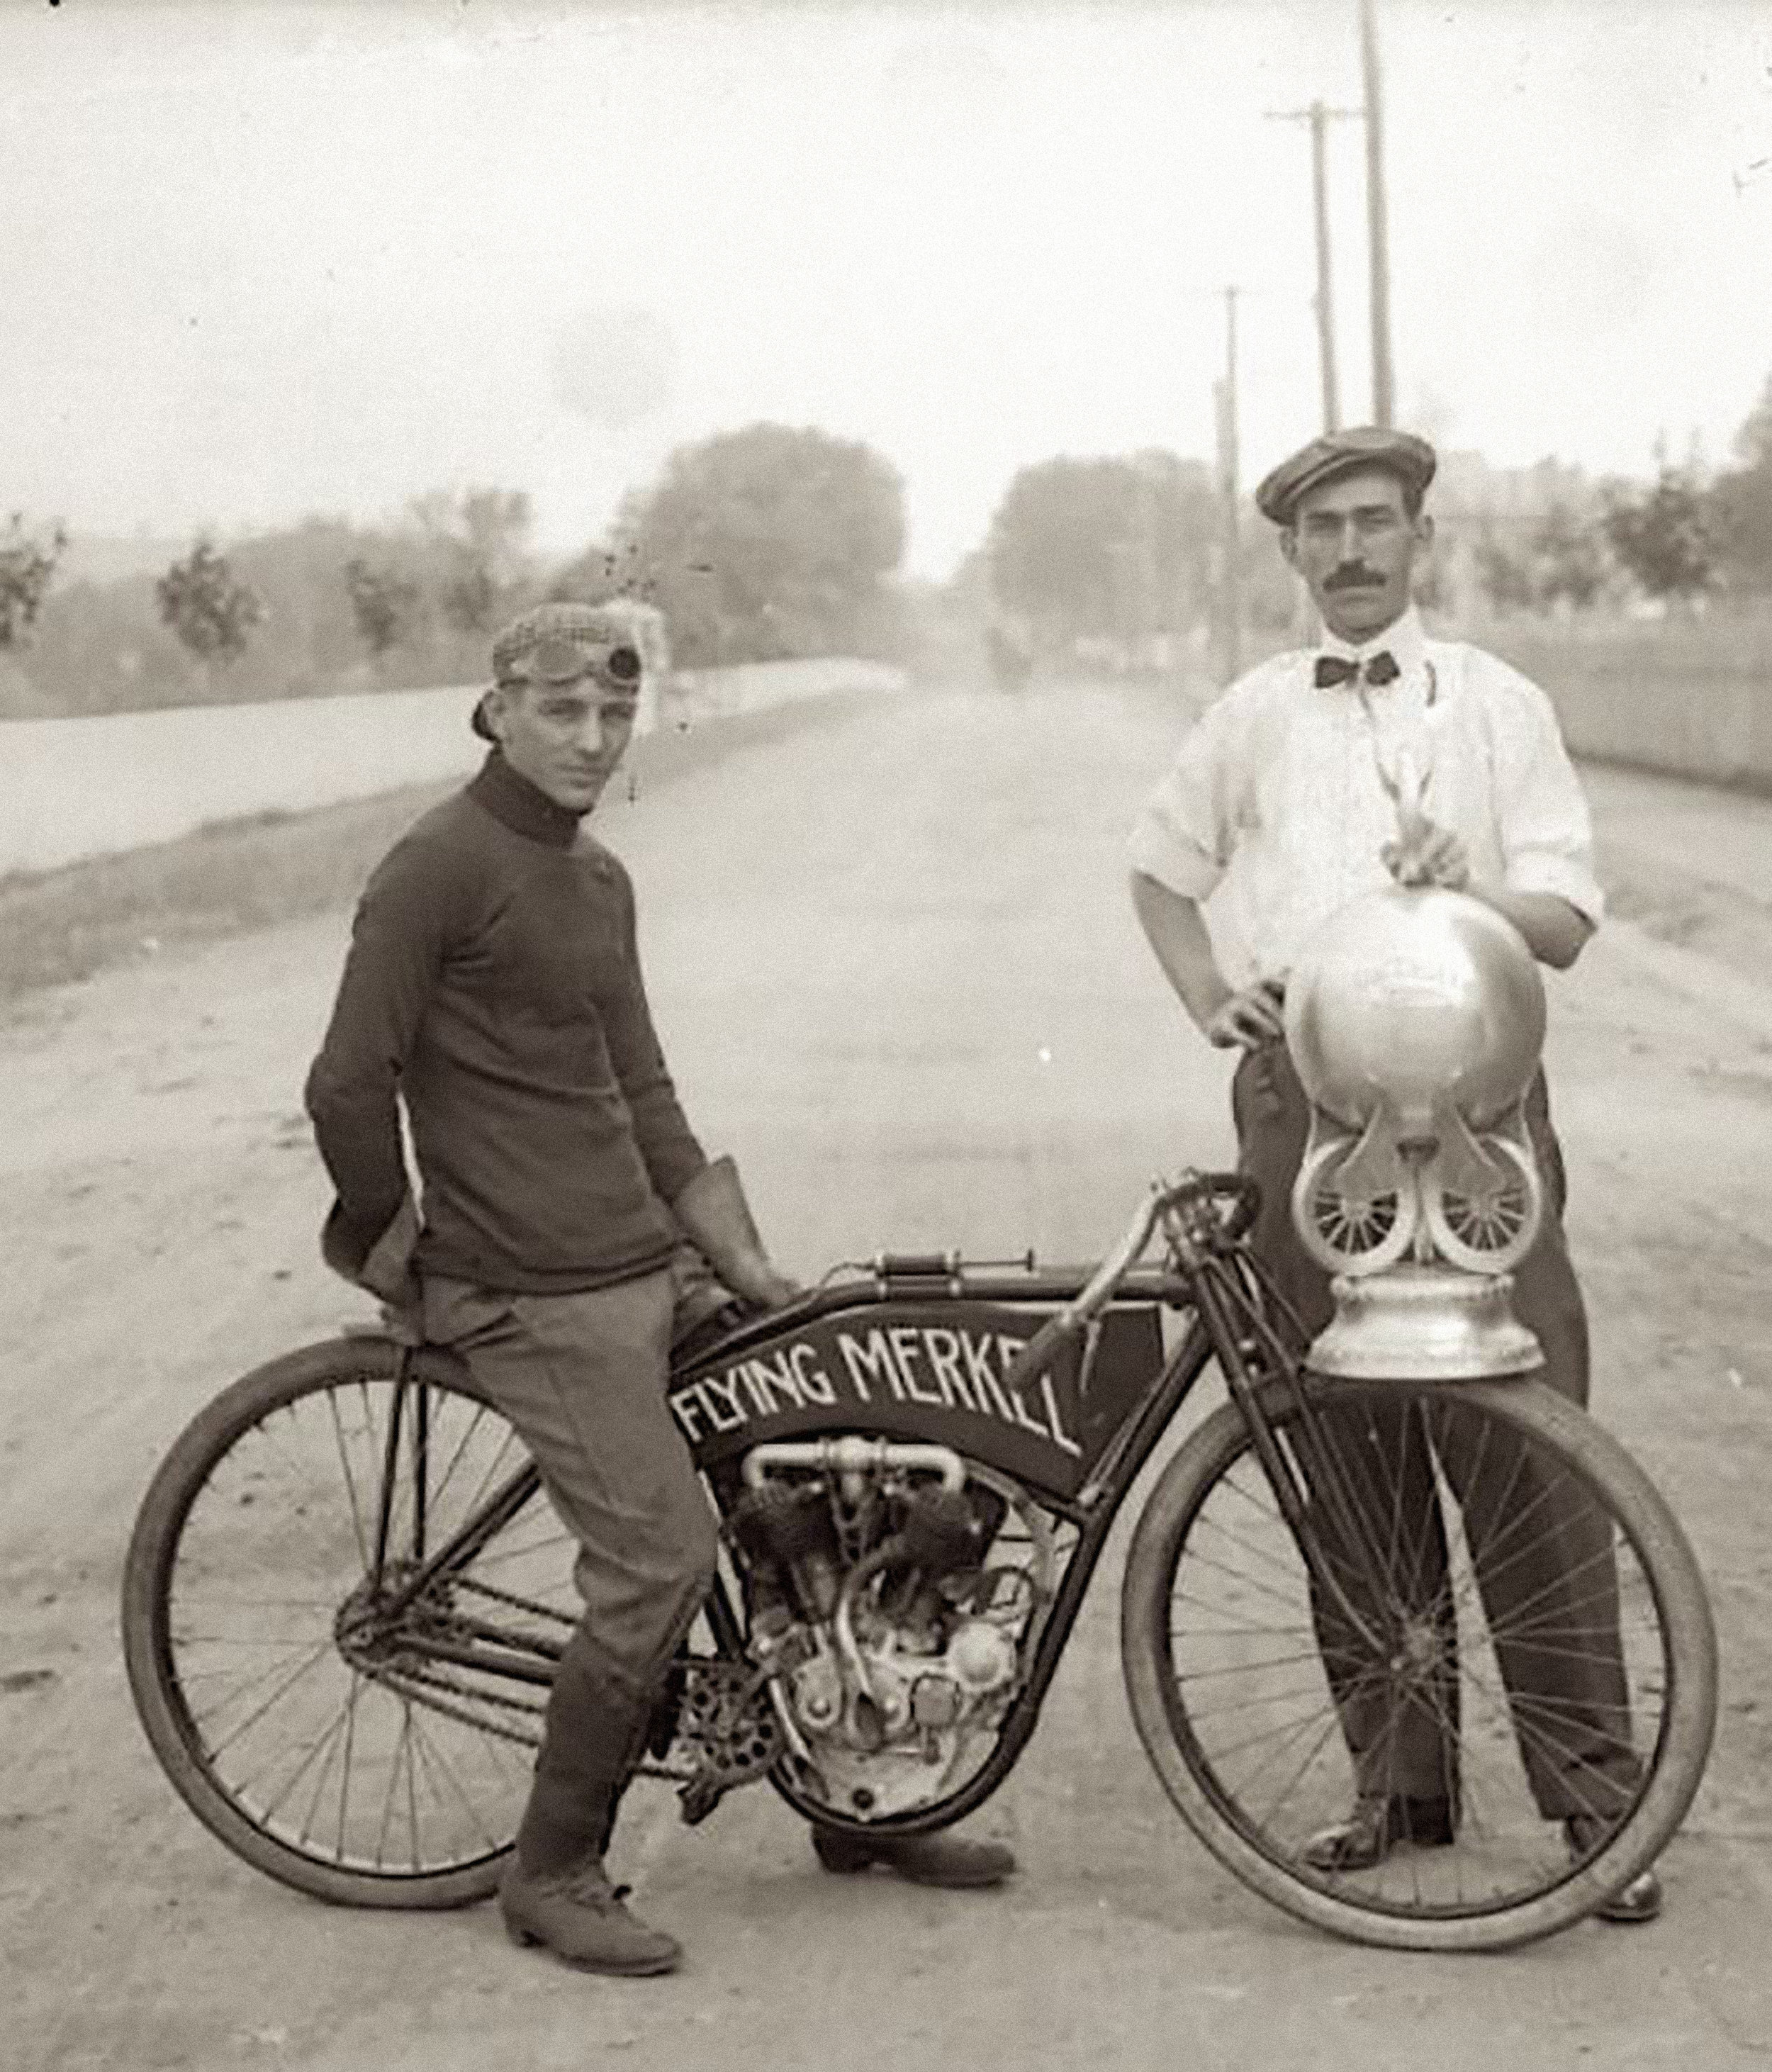 OUR STORY - I'm the great grand nephew of Joseph Merkel (pictured here on the right after one of his cylces won the 1910 FAM championship race), and for as long as I can remember the Flying Merkel brand has been a source of pride in our family. For us it is more than just an amazing piece of Americana - it is a part of our family history, and part of what has made motorcycling, motorcycling! We've taken that pride a step further, and have fought for the rights to own this brand and shepherd it into the future. We are extremely proud to finally call ourselves Flying Merkel!